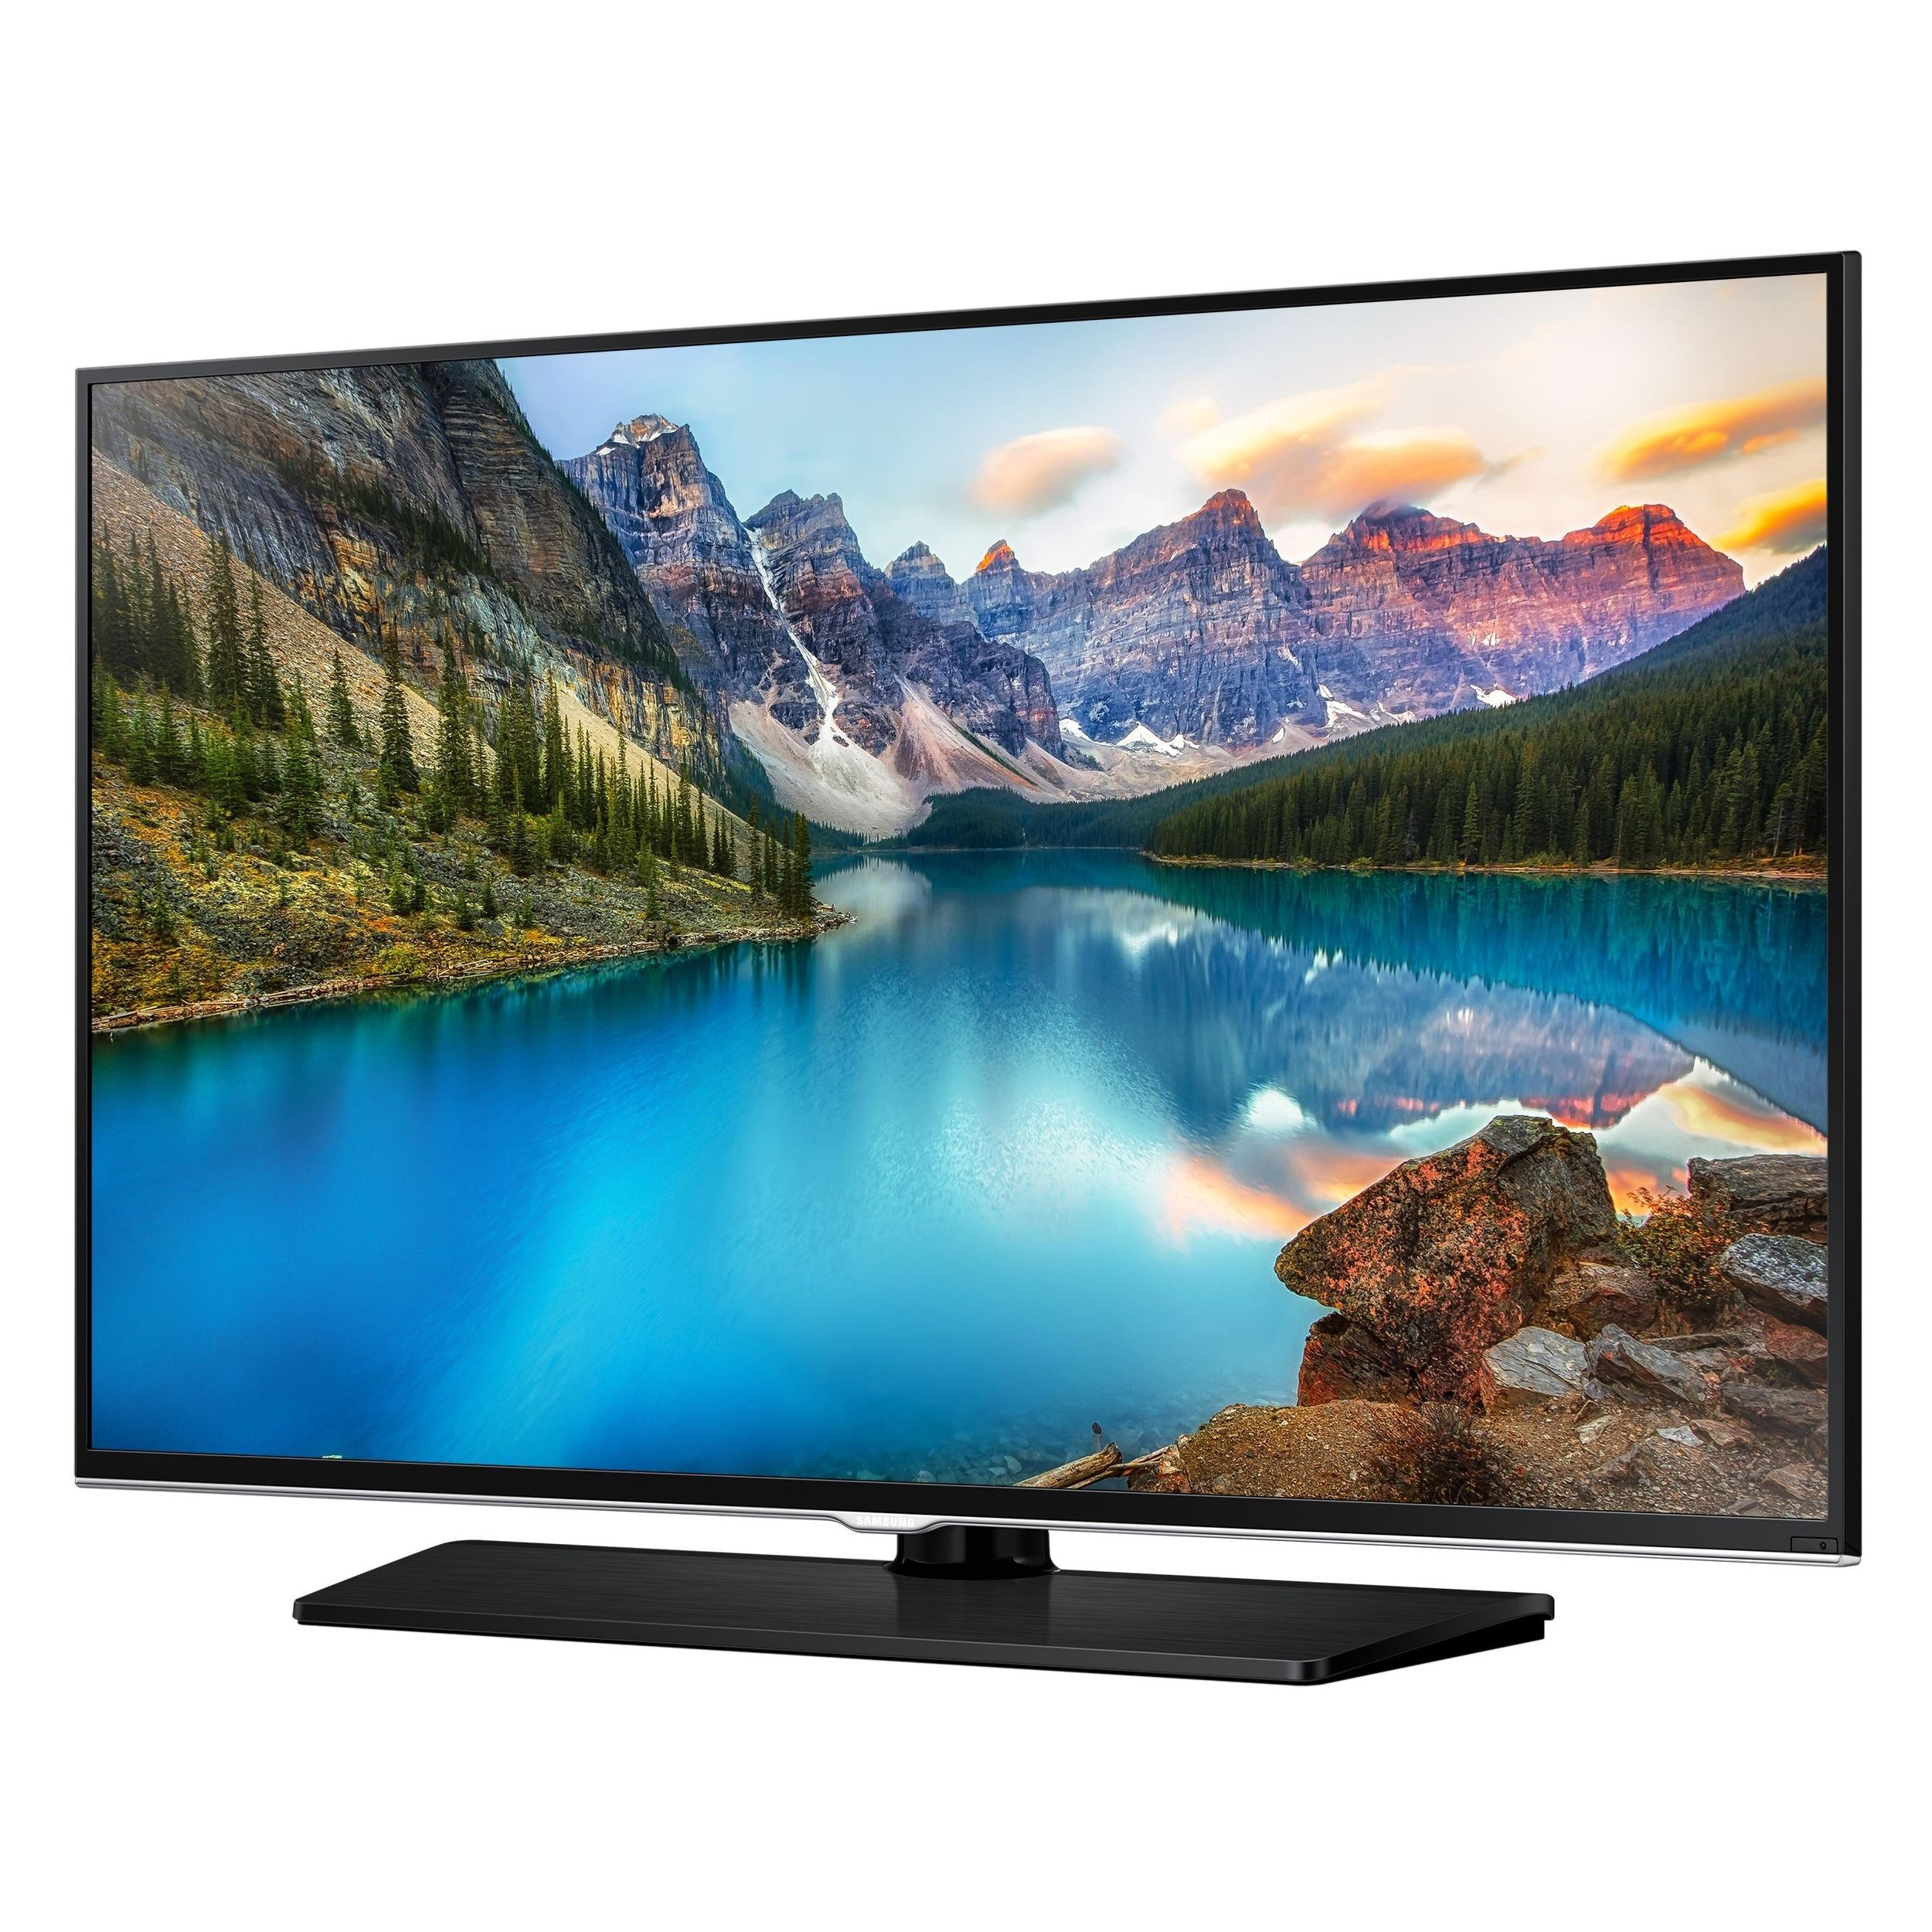 Samsung UN50JU650DF LED TV Drivers for Mac Download